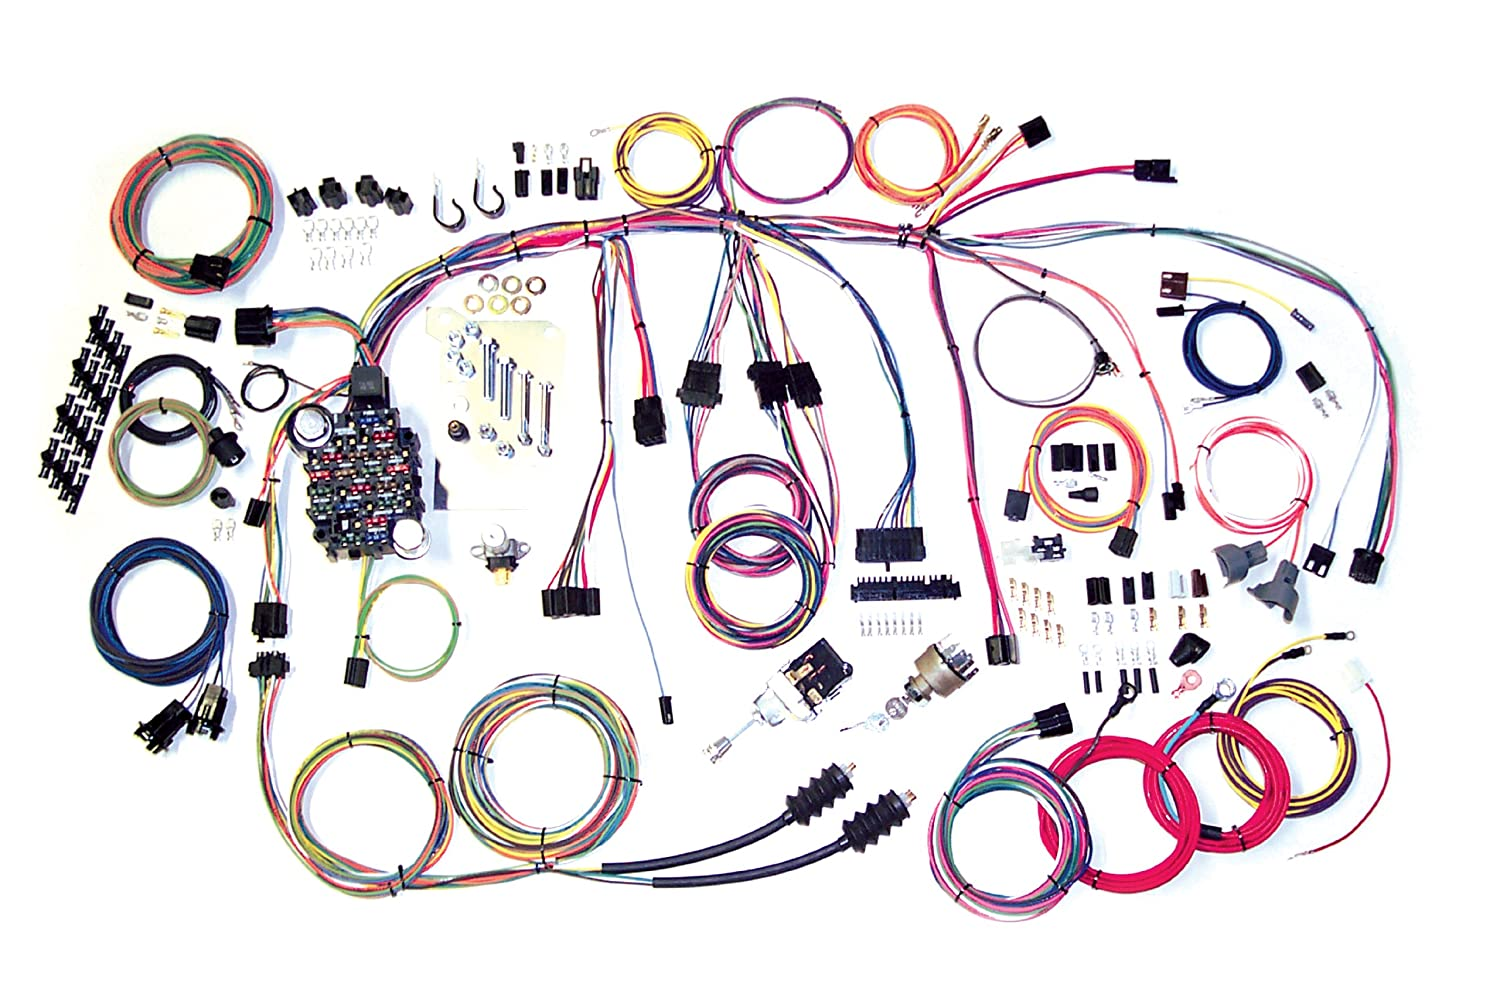 816T8GFu4LL._SL1500_ amazon com american autowire 500560 truck wiring harness for 60 1964 chevy c10 wiring harness at eliteediting.co